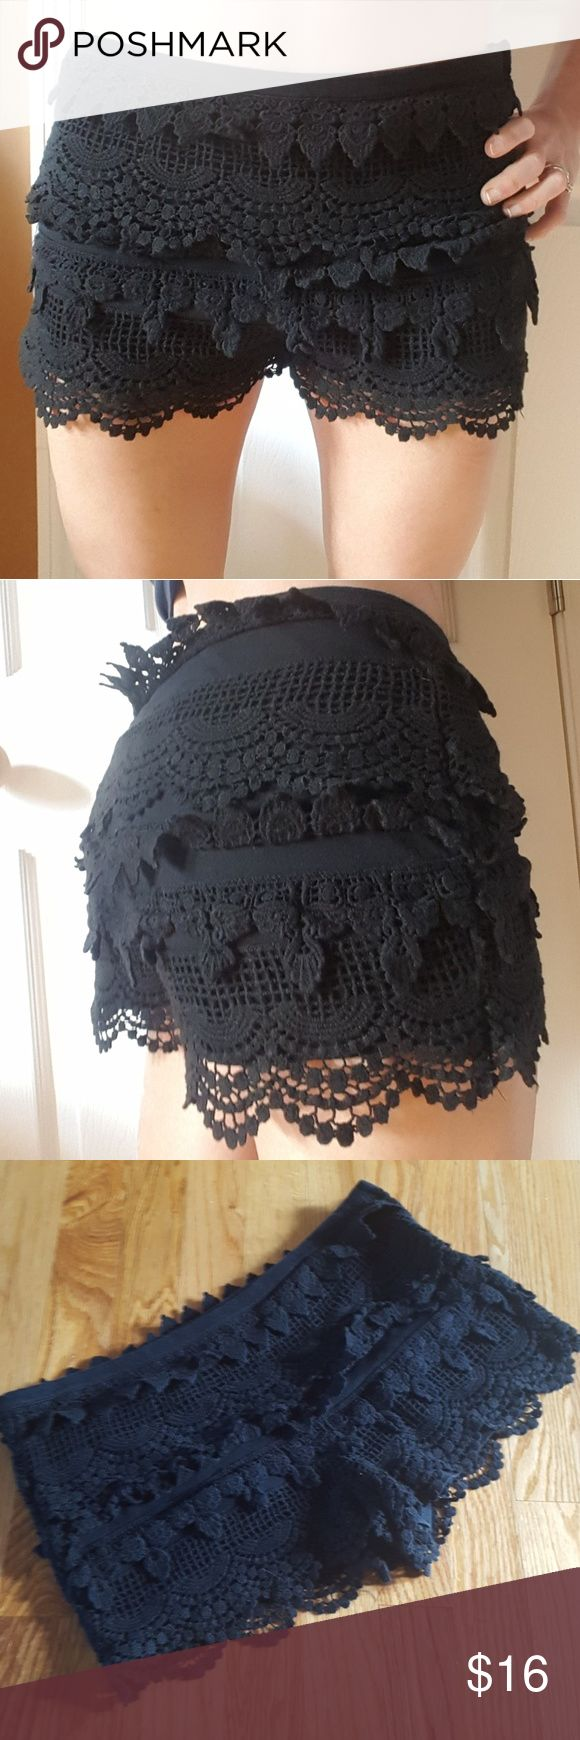 """Cute Black Crochet Shorts 100% Cotton Size M Super cute and versatile. Side zip. Great overall condition with some fading. Please note that the actual crochet may have some fraying or other minor signs of use. 100% cotton.   Waist approx 15.5"""" when flat, rise 10"""", inseam 1.5"""". For reference, I'm 5'6 with a 27"""" waist and 37"""" hip and these are big on me in the waist area. I just pulled them on. GB Shorts"""